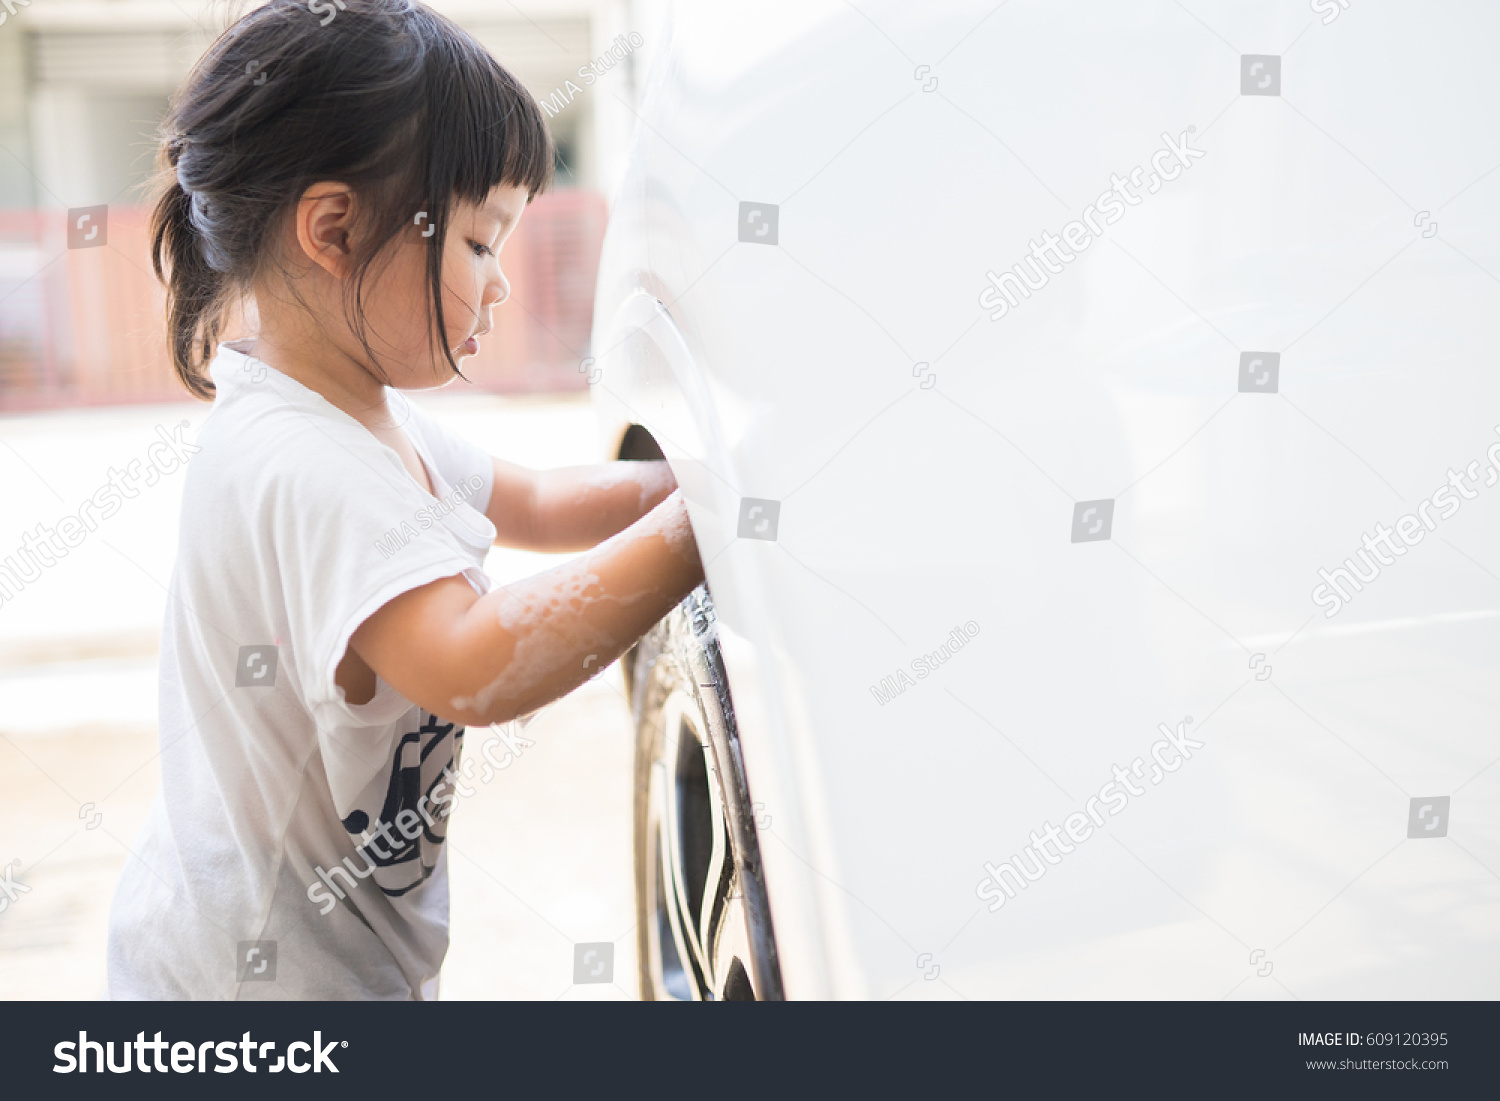 from Reed chinese girl washing a car